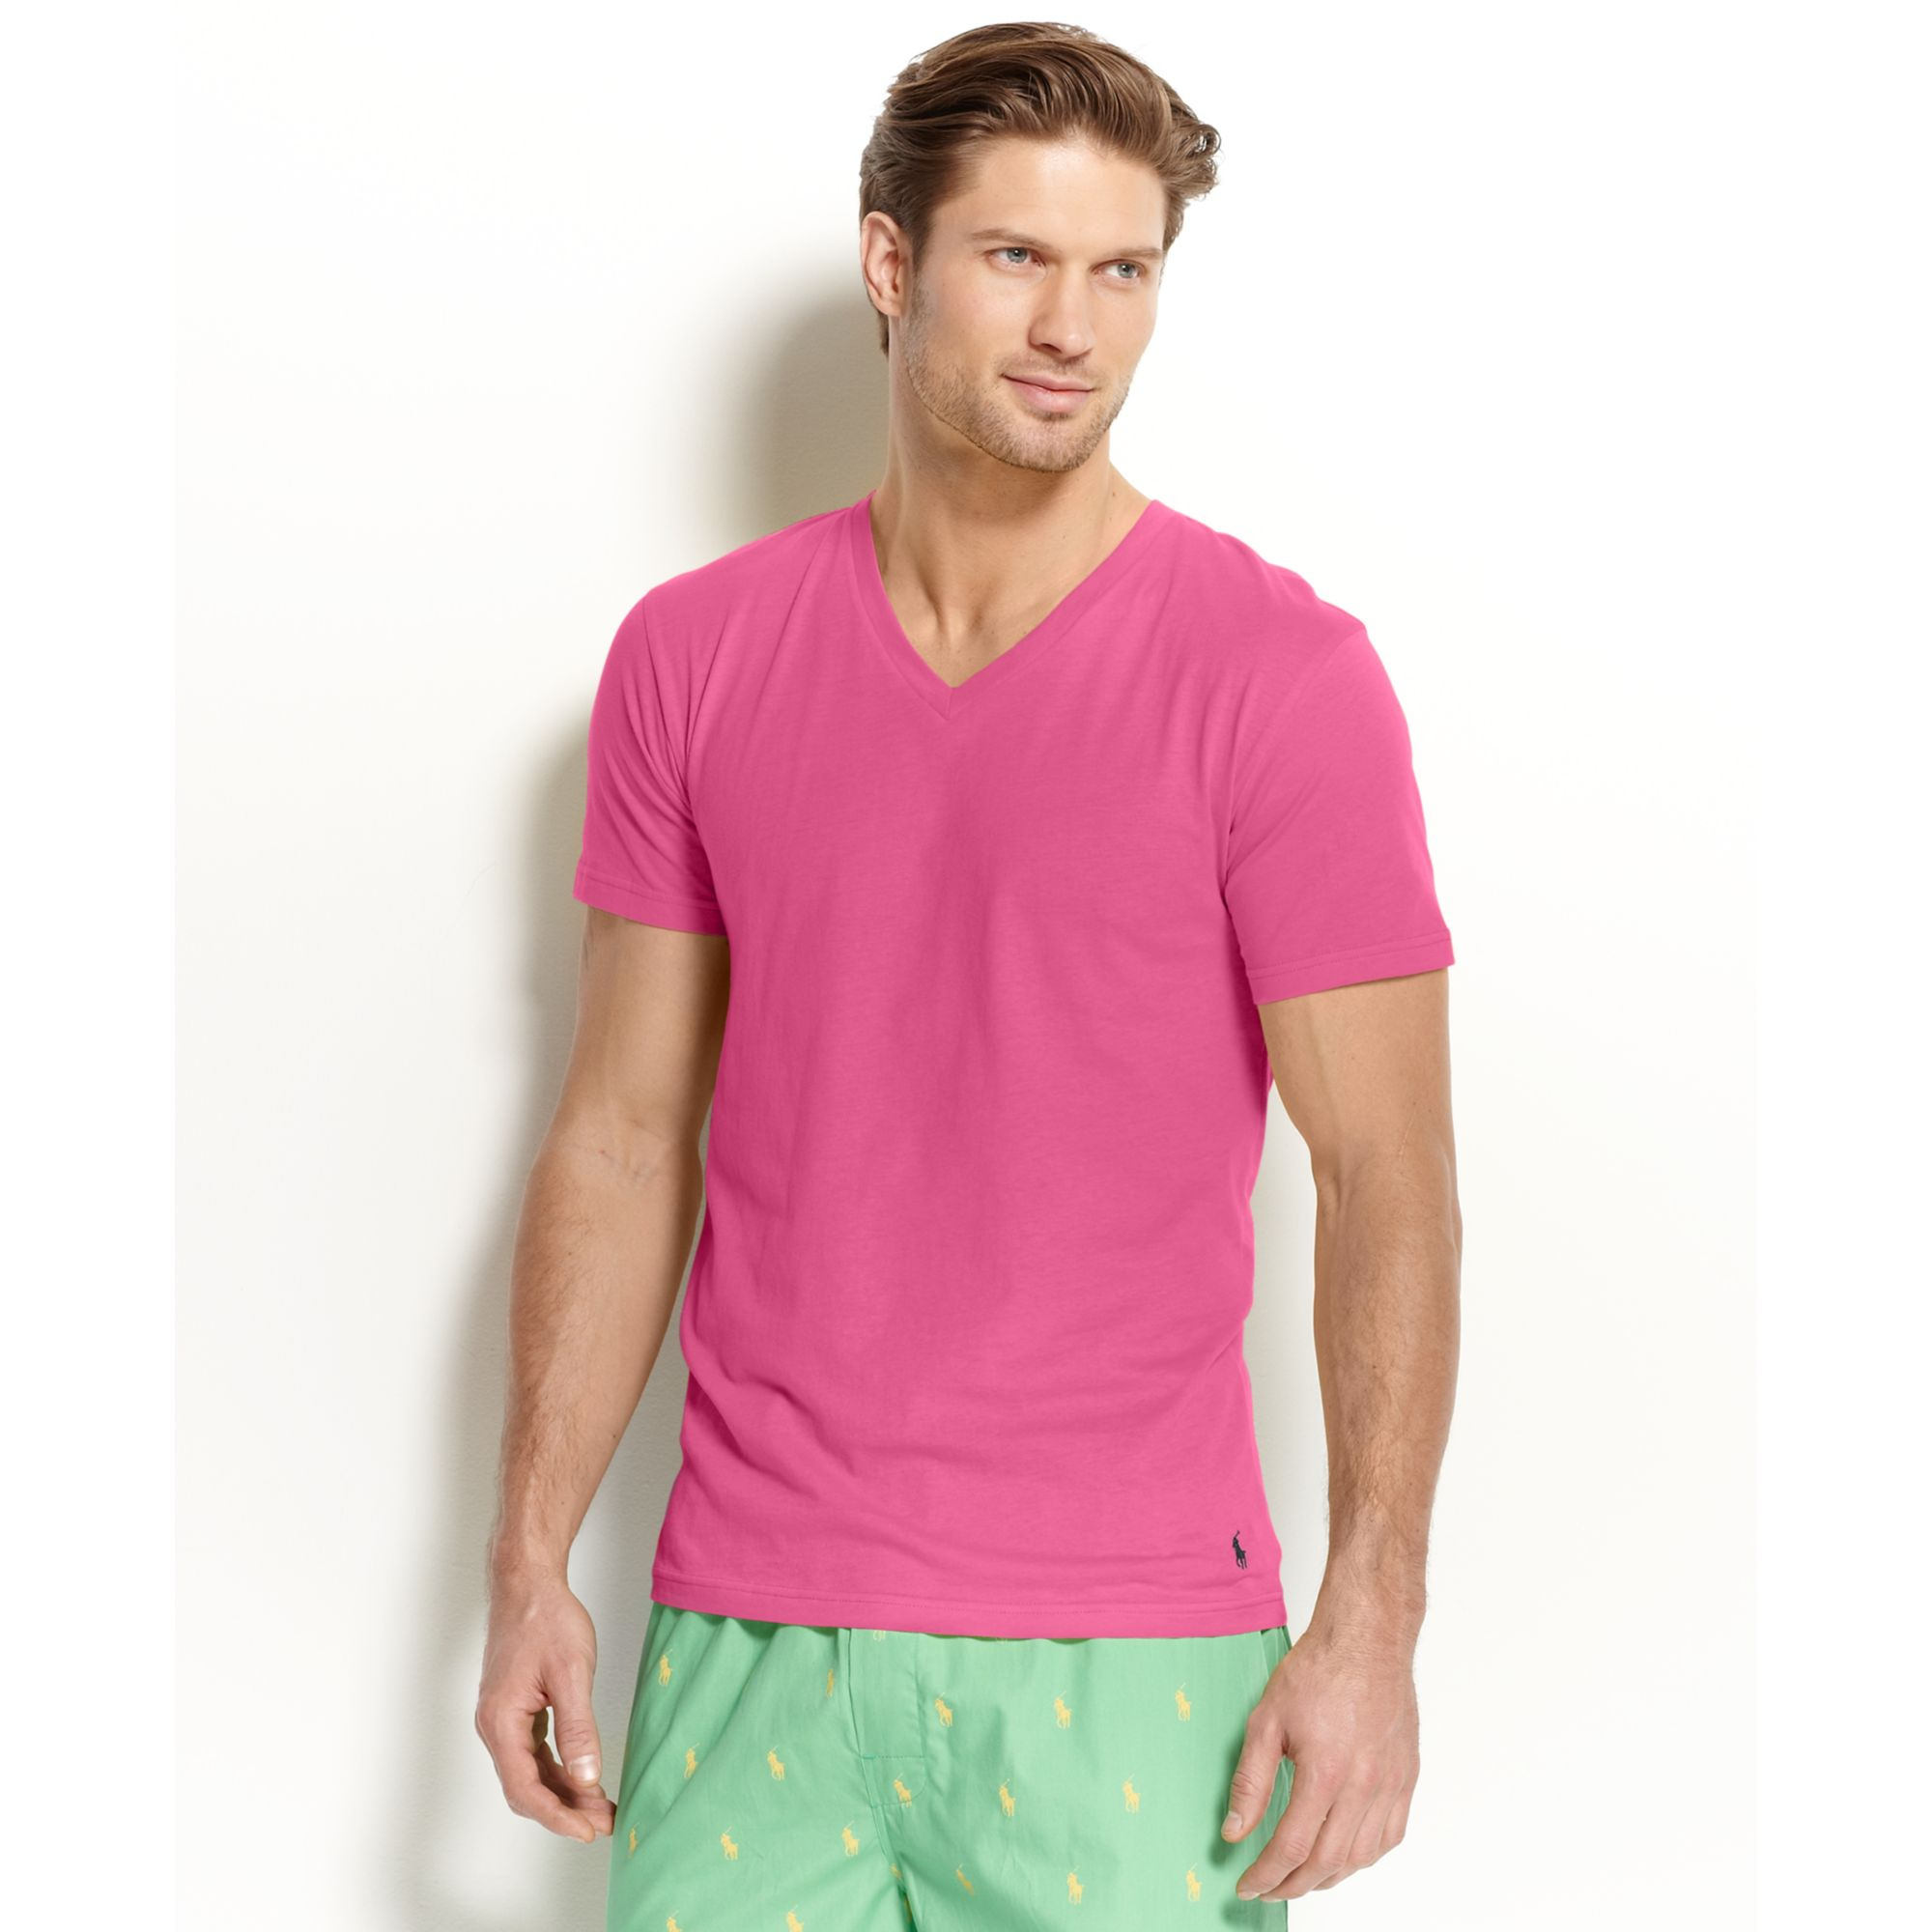 Colored V Neck Shirts